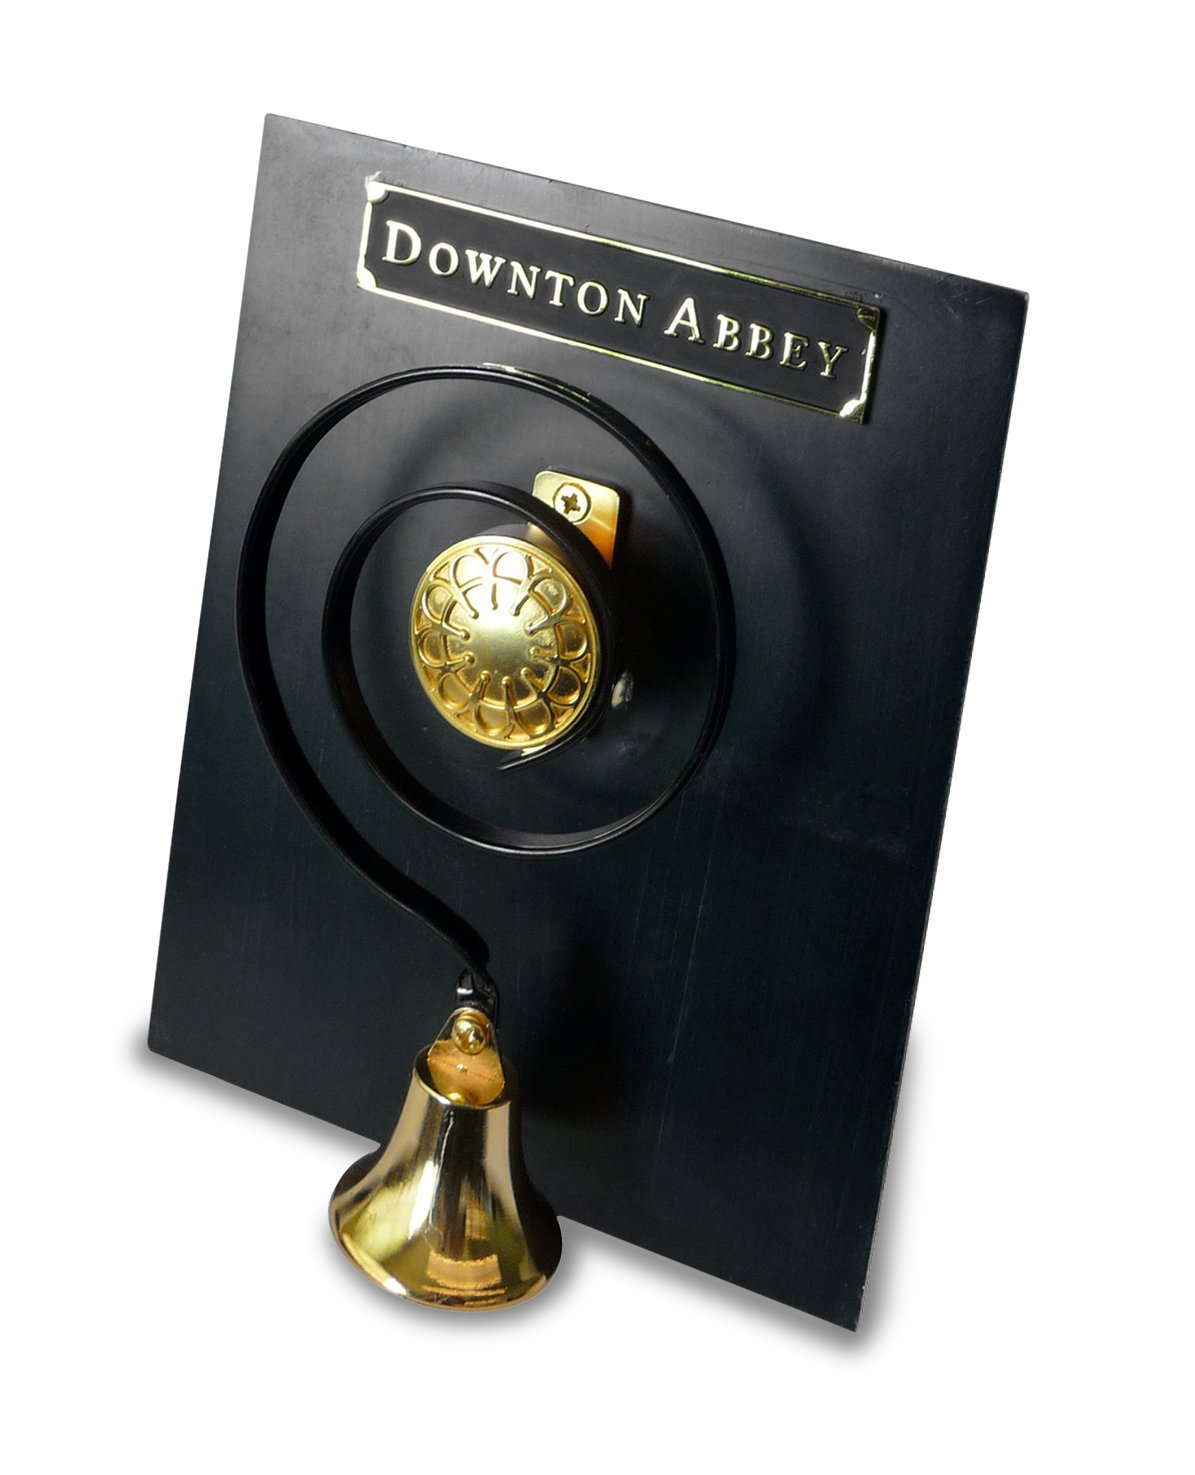 Downton Abbey: Complete Limited Edition Collector's Set by PBS Home Video